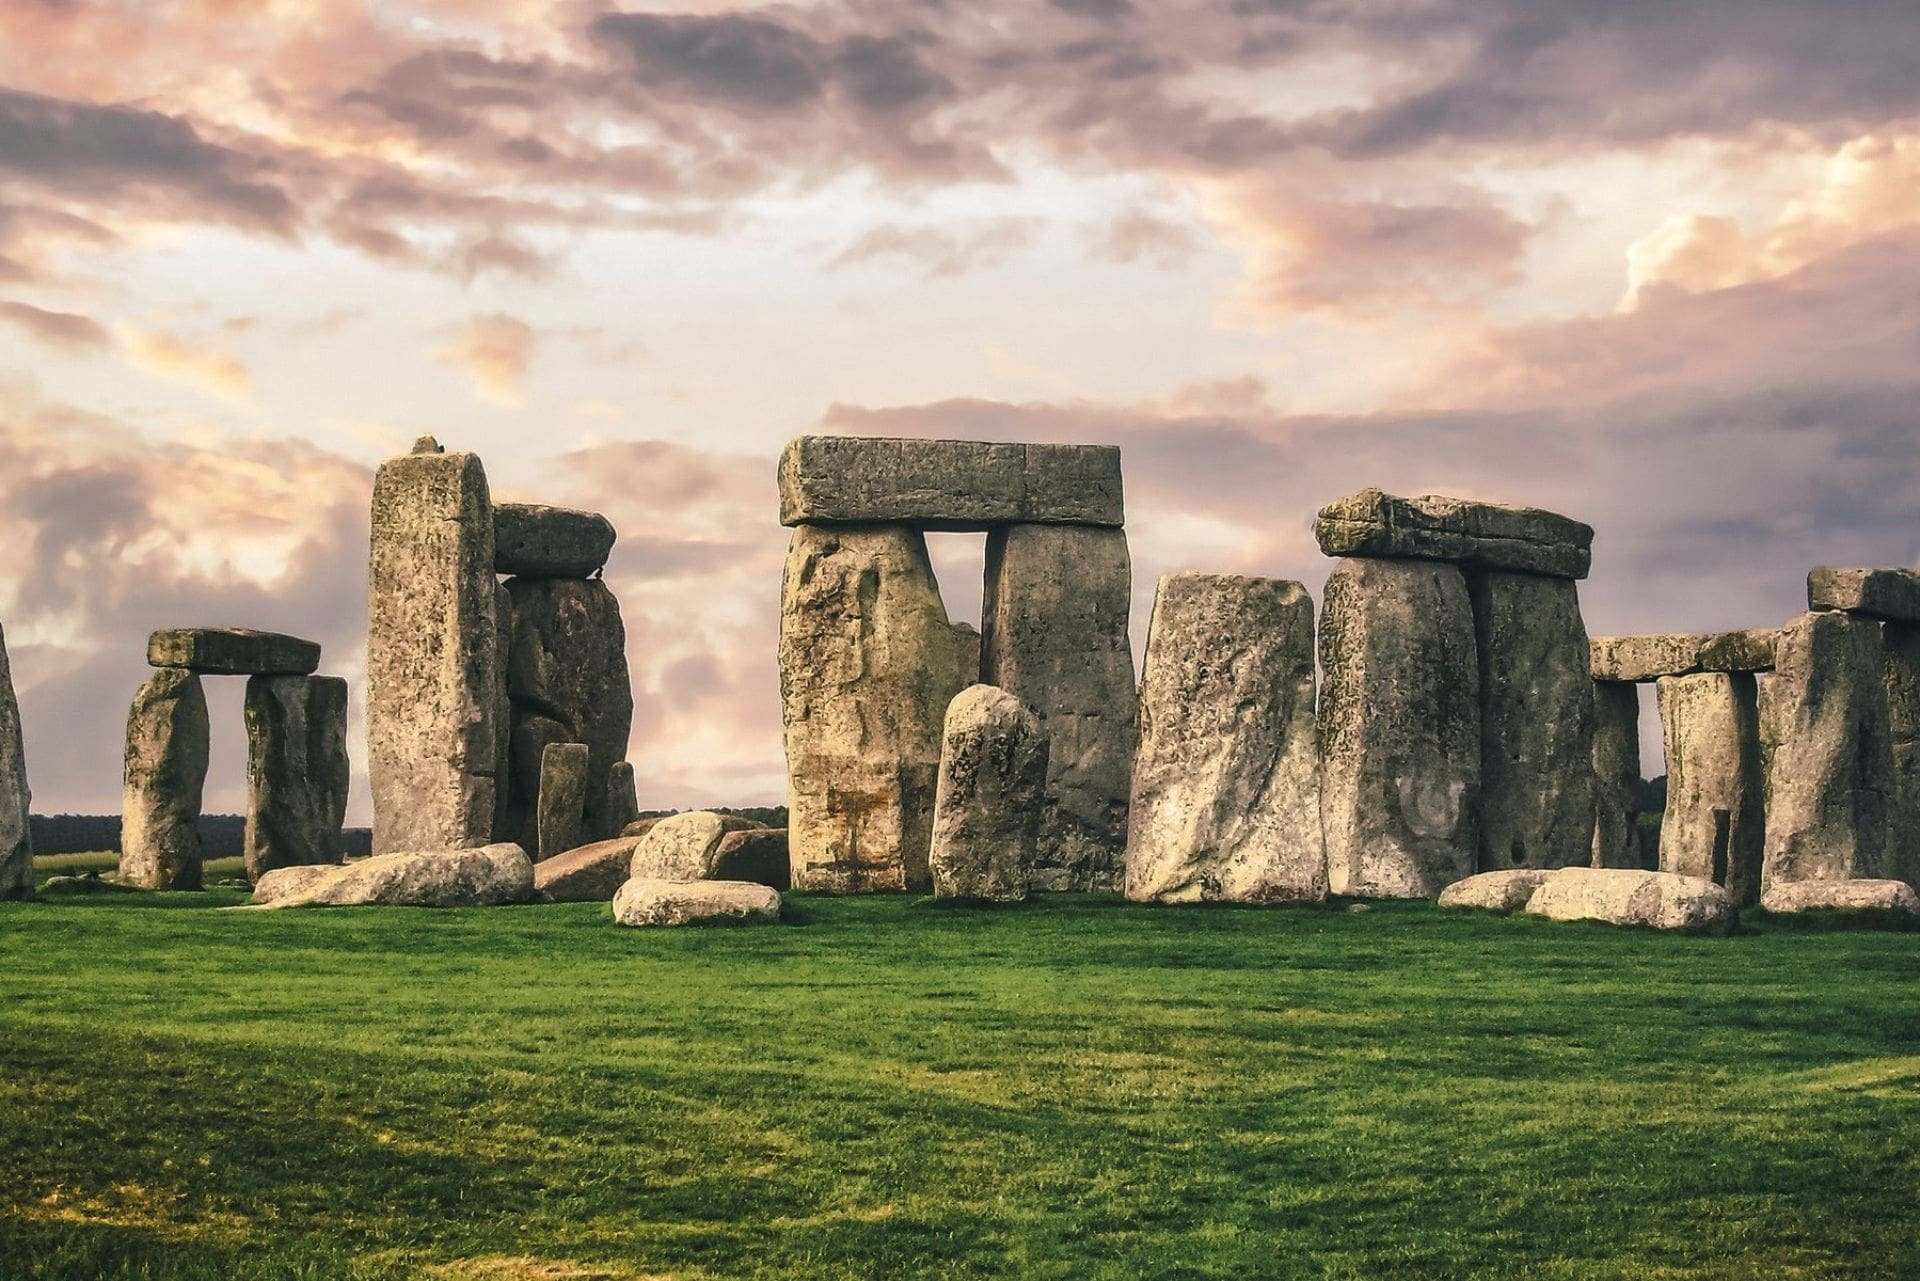 ring-of-large-standing-stones-on-grass-in-field-at-sunset-stonehenge-salisbury